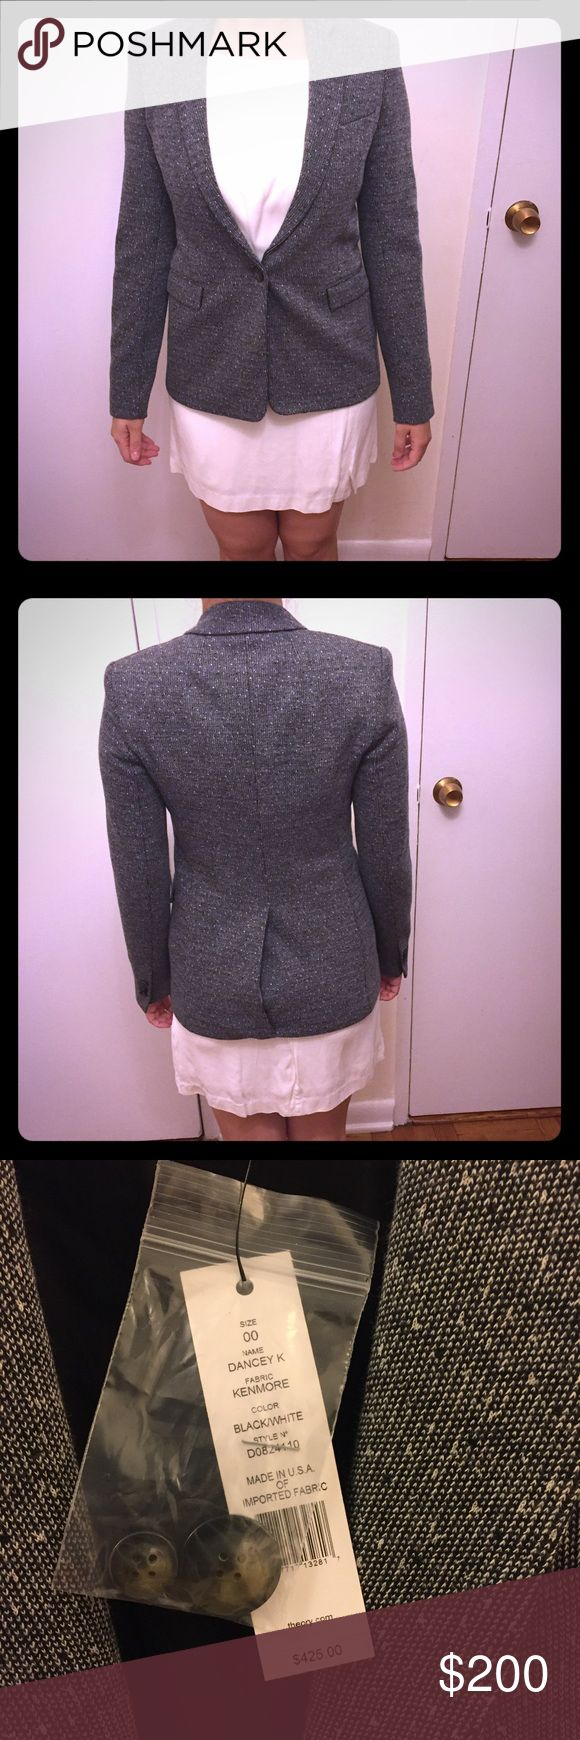 Theory Grey Tweed Blazer - NWT Basics: Brand new with tags - Grey tweed, fully lined blazer from Theory - Size 00   Material: Wool, fully lined   Structured tweed blazer, very thick material so you can wear it on its own in those transitional months as a jacket and it's a perfect winter weather blazer. Comes with extra buttons. The grey, white, and black tweed make it a very versatile piece.  Jeans and shirt in first two pictures are also for sale!! Bundle for a discount! Theory Jackets…